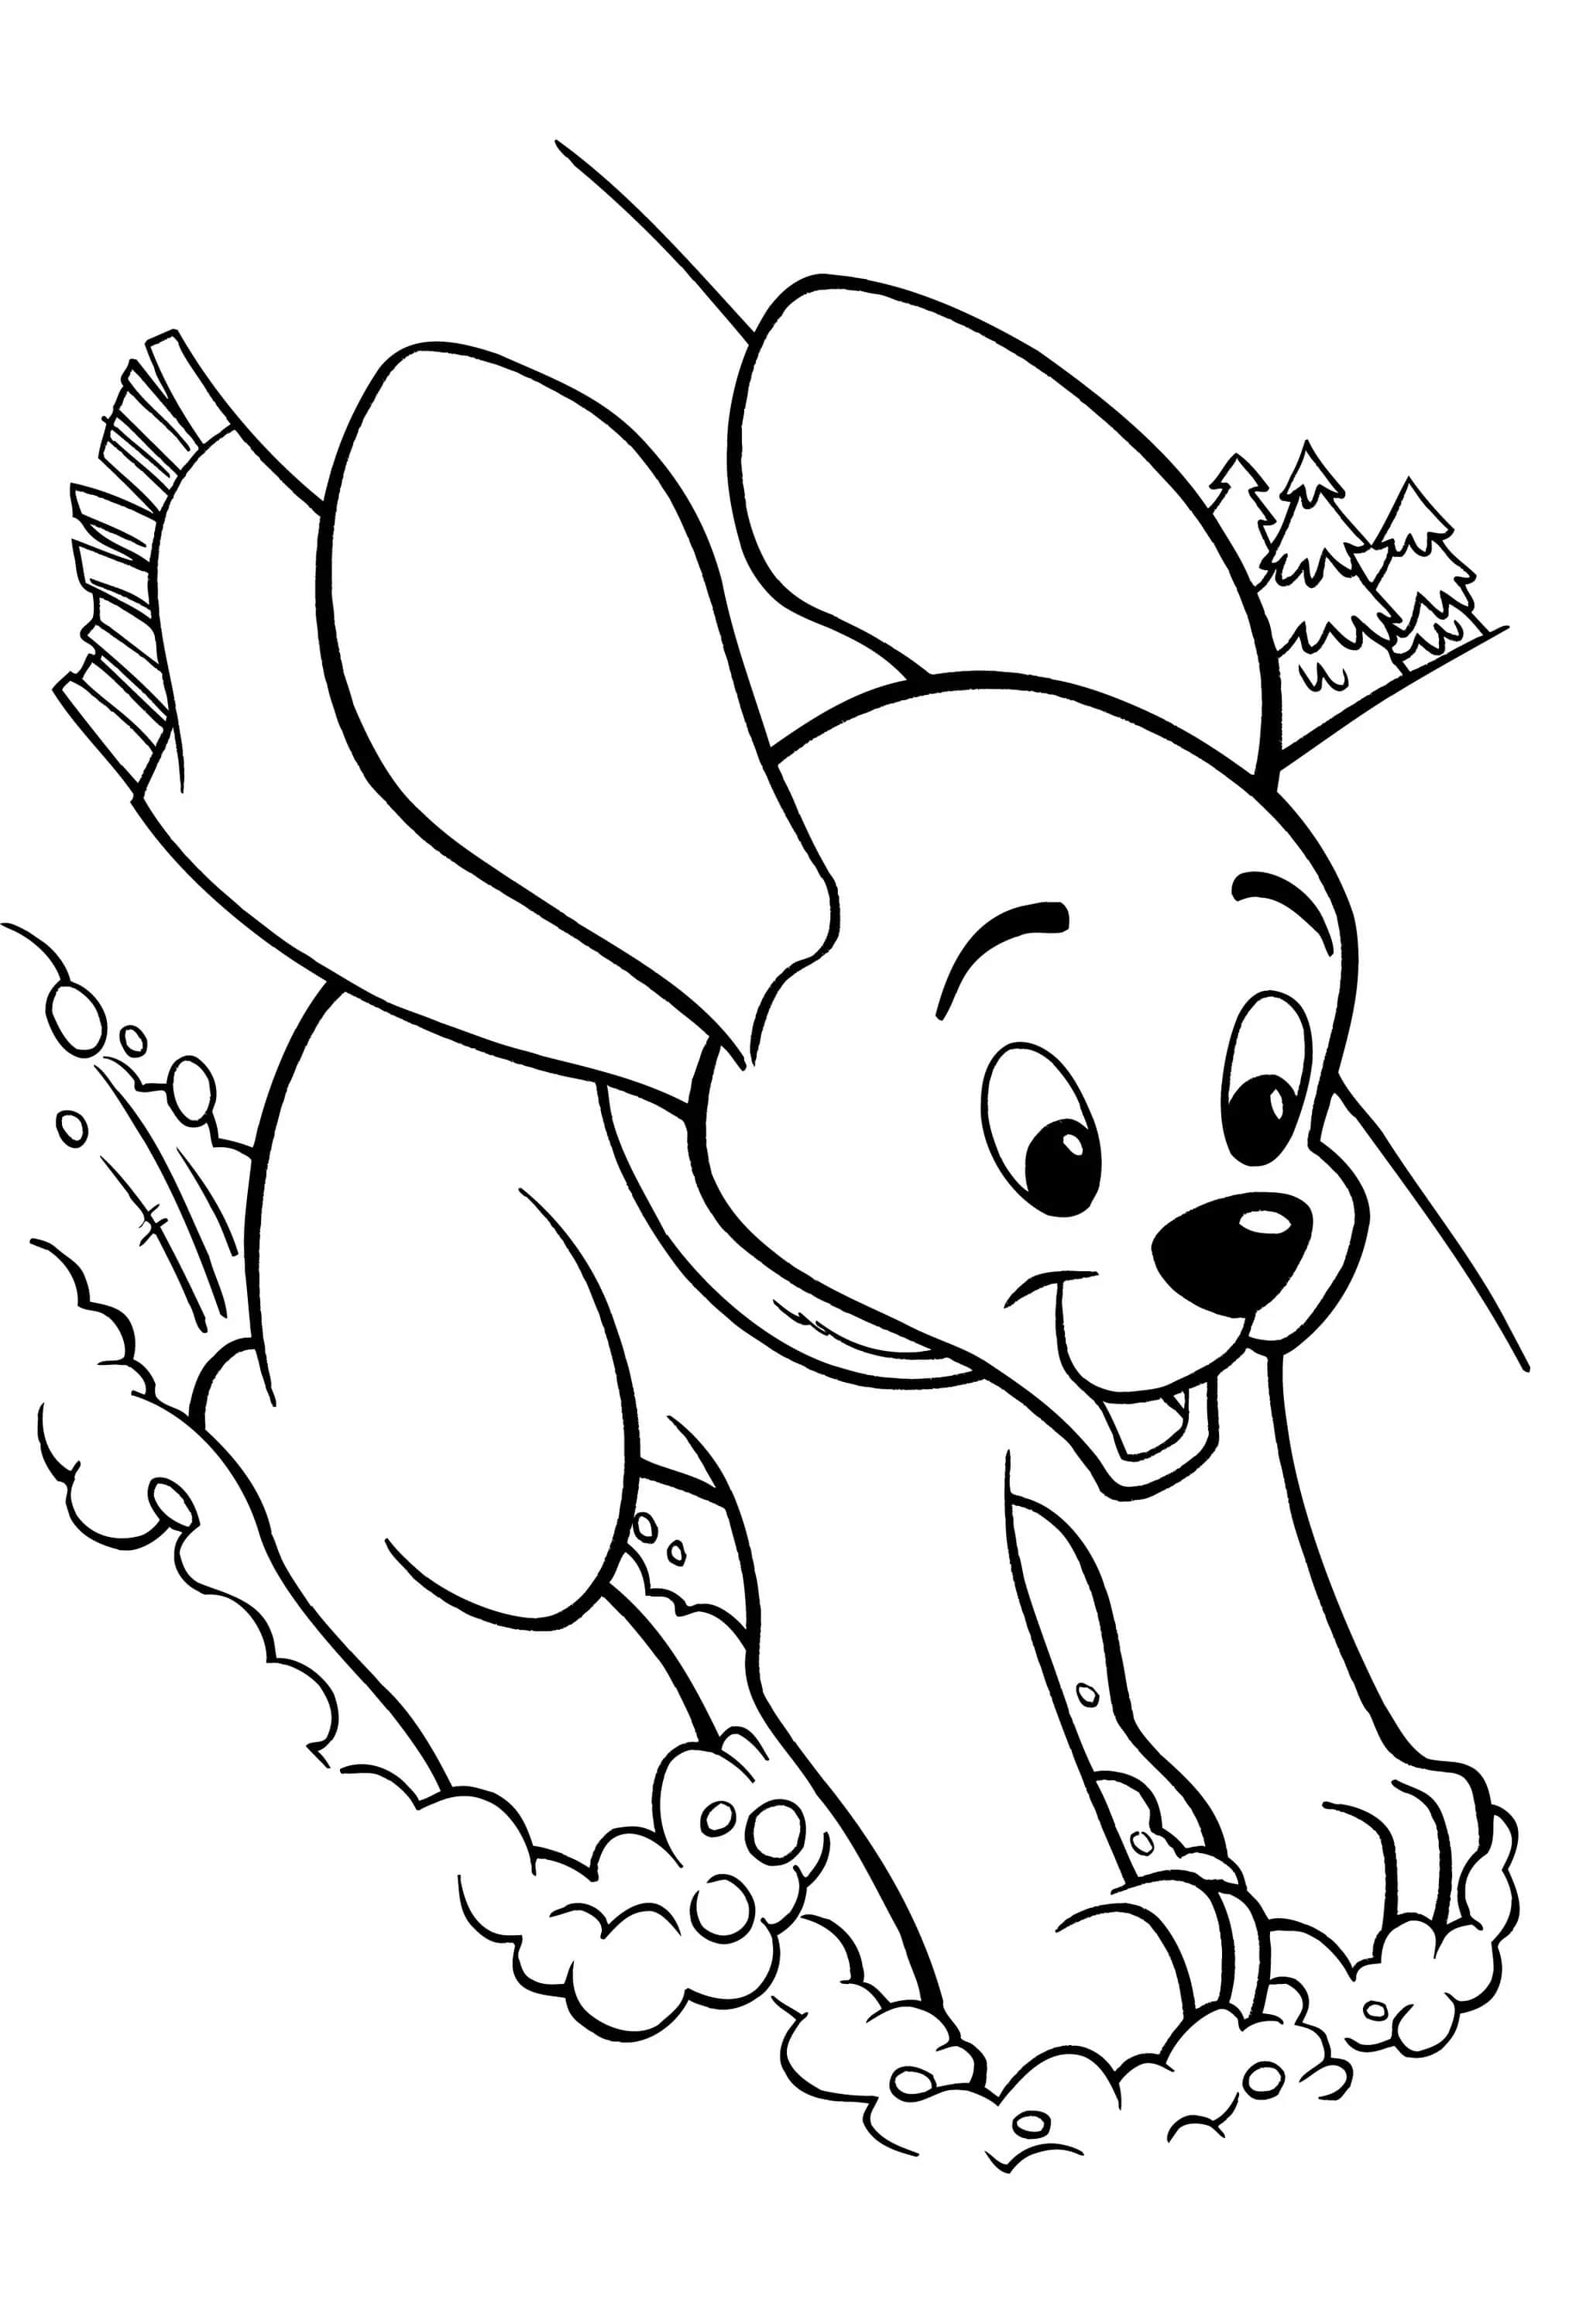 coloring dog for kids puppy dog pals coloring pages to download and print for free dog for coloring kids